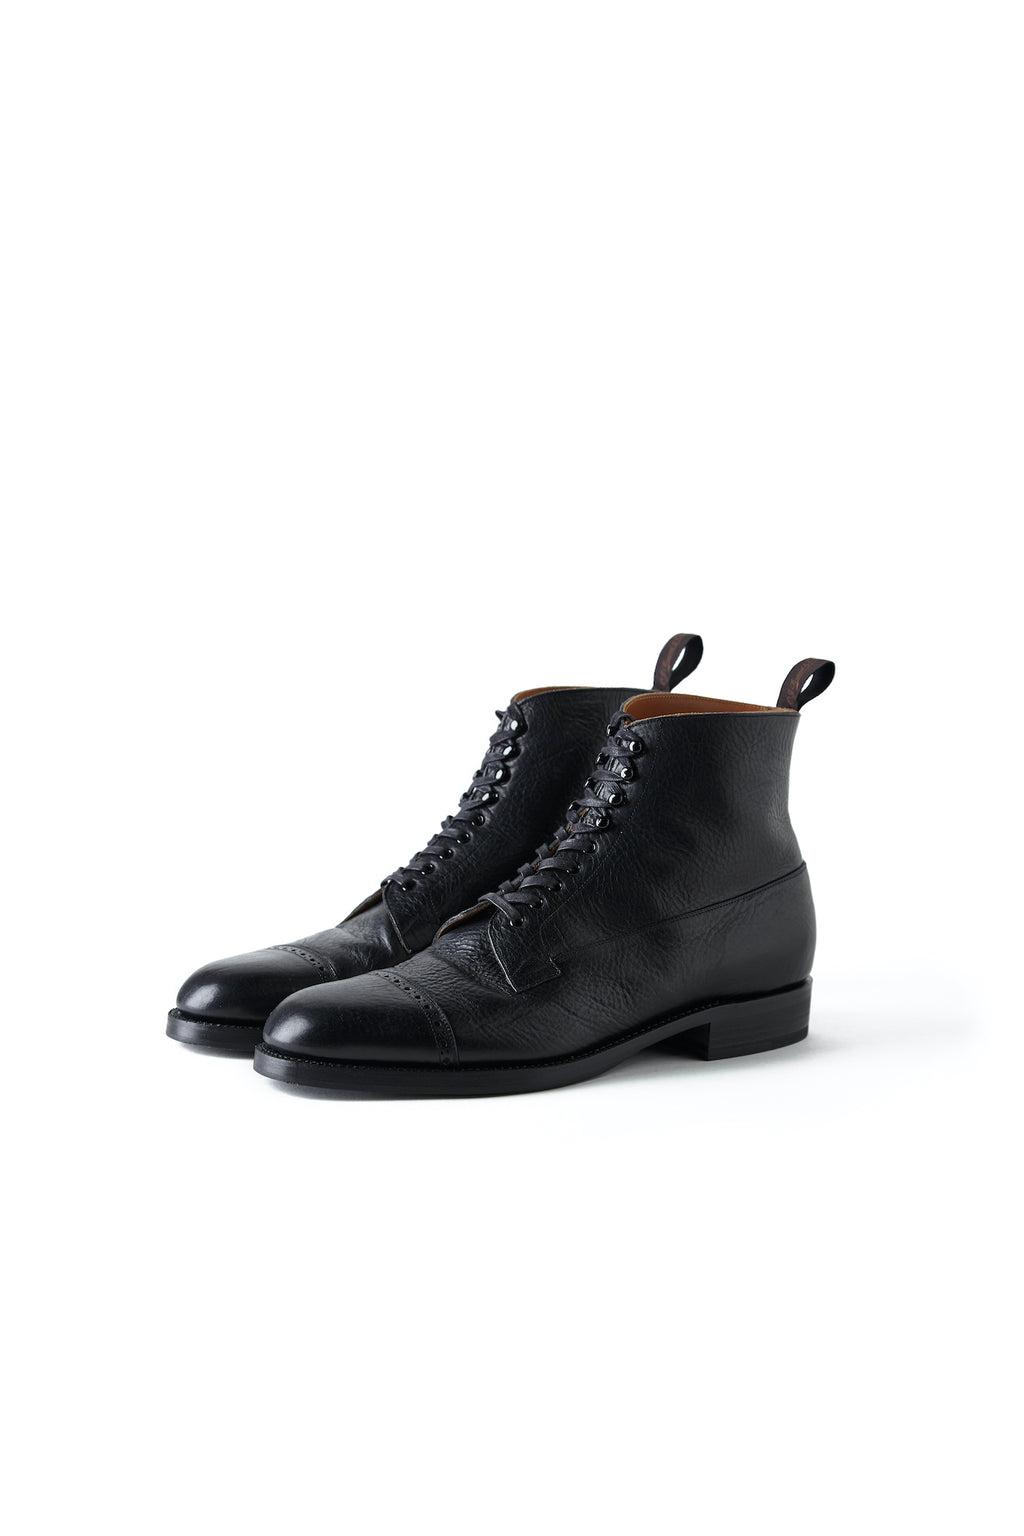 """The Trader"" VACHETTA LEATHER CAP TOE BOOTS - 192OJ-FW03"